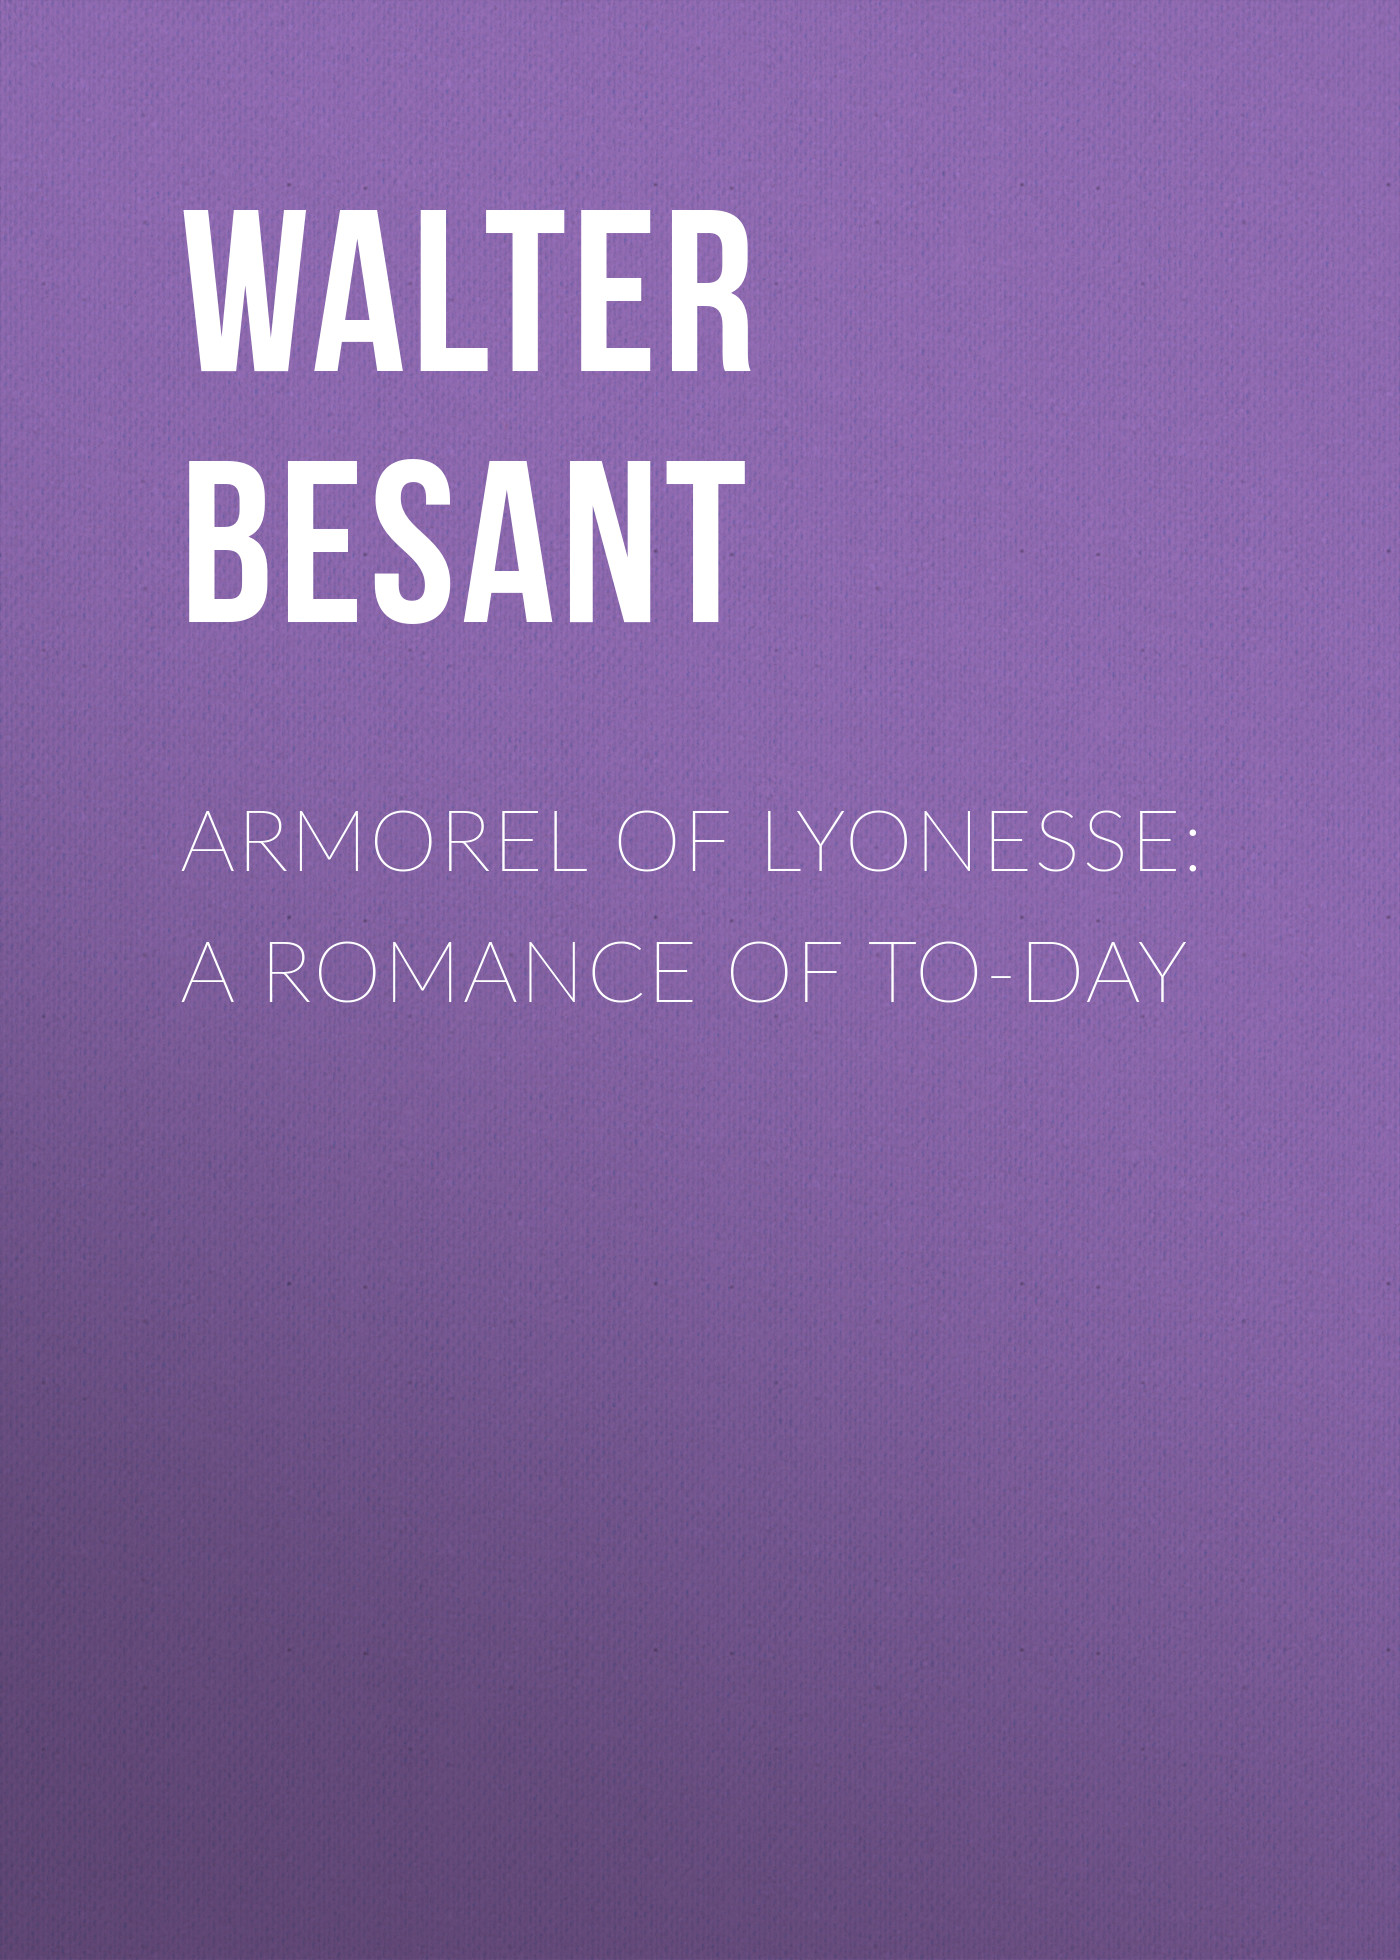 Walter Besant Armorel of Lyonesse: A Romance of To-day walter besant the lady of lynn